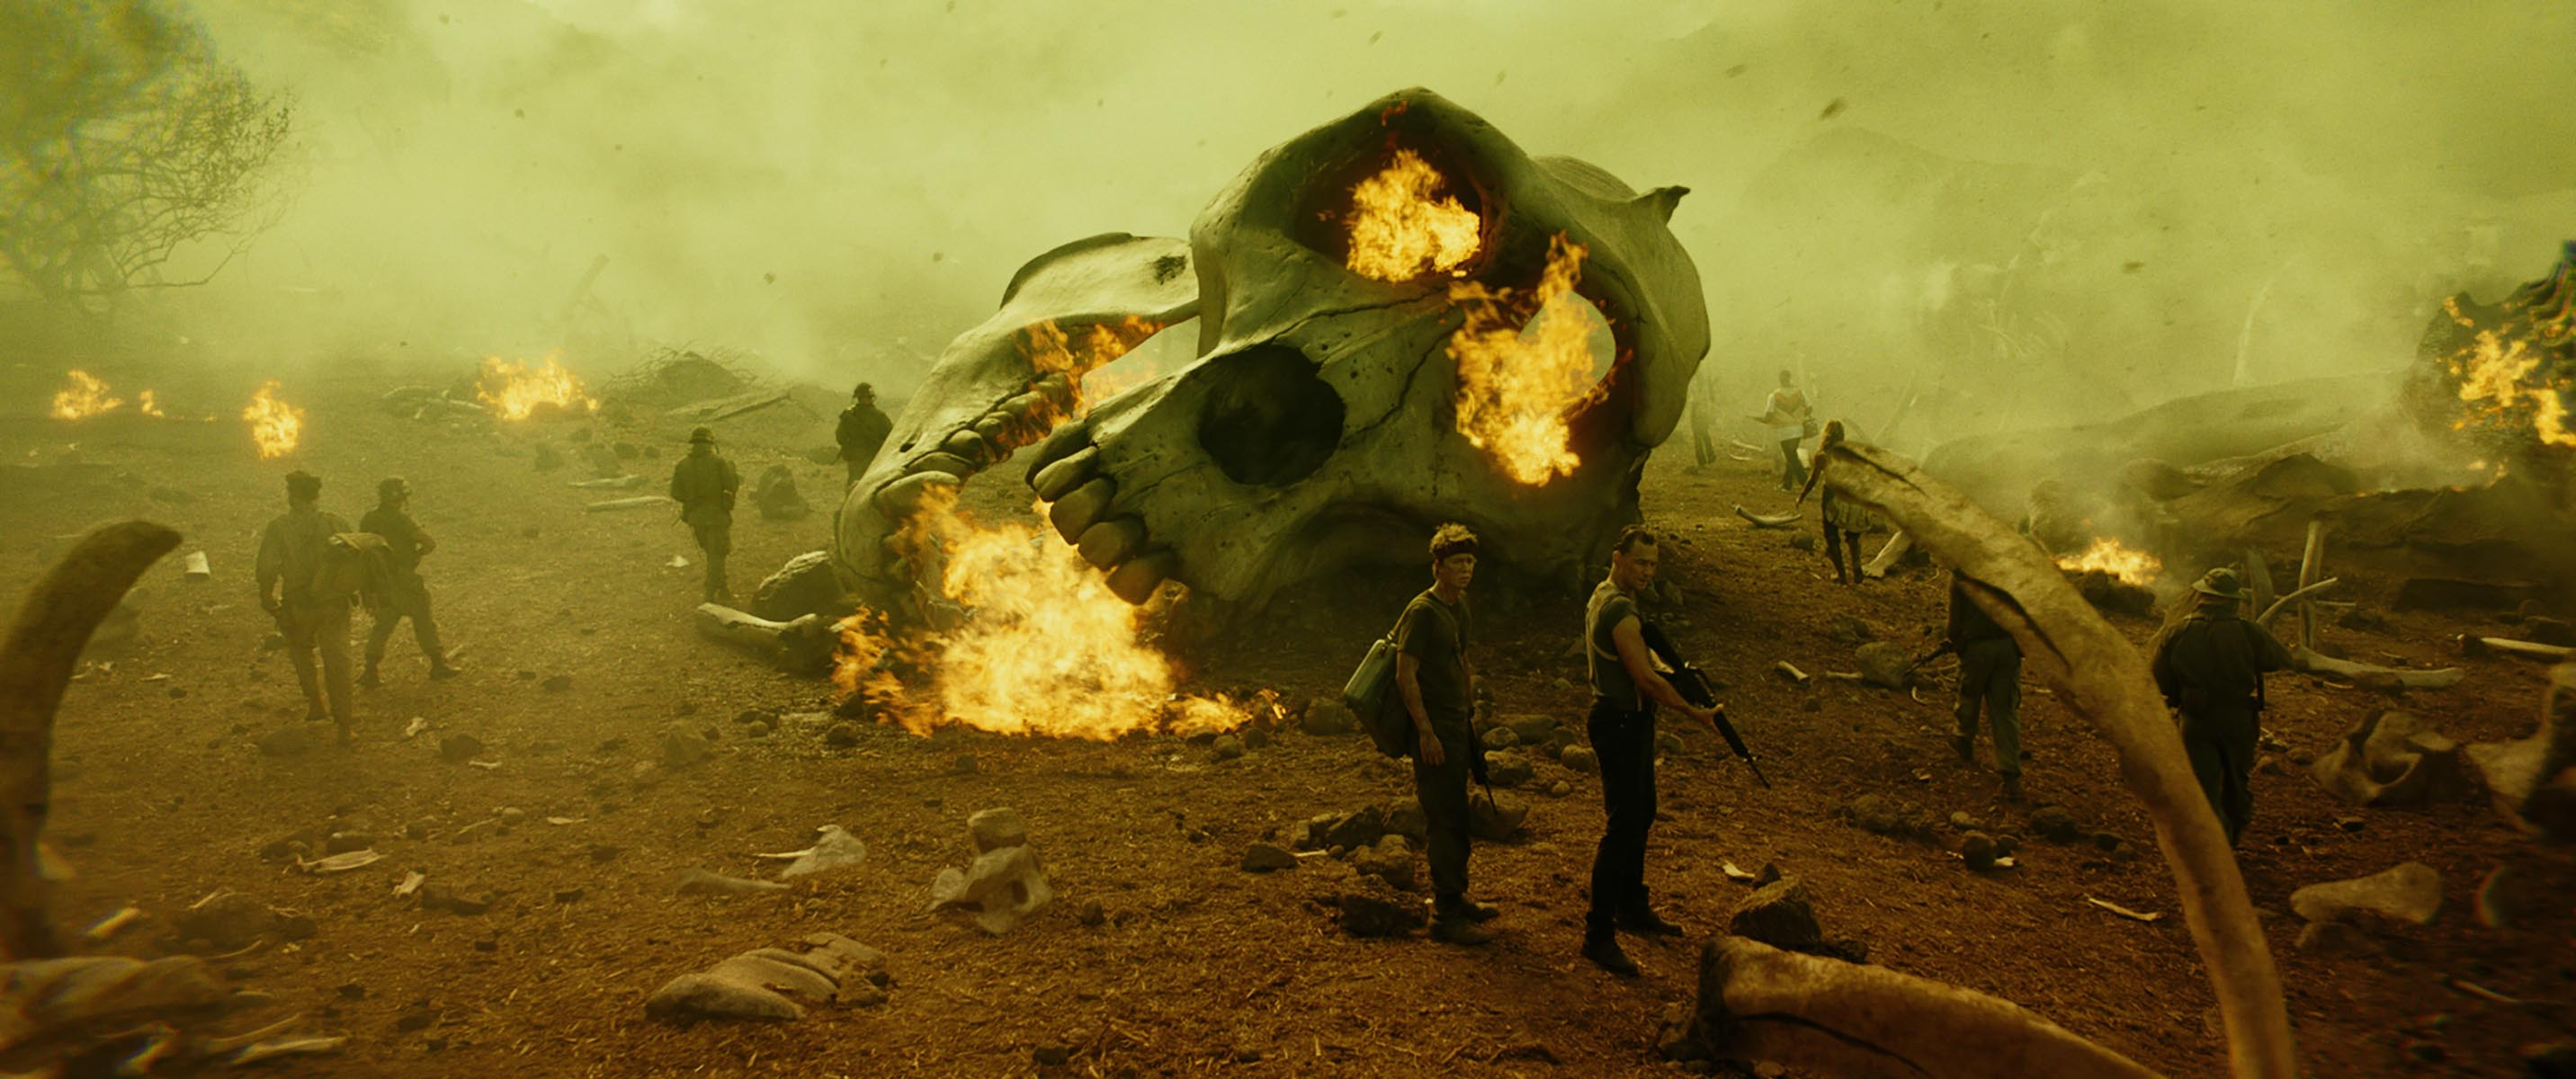 Going bigger and bloodier, Kong: Skull Island